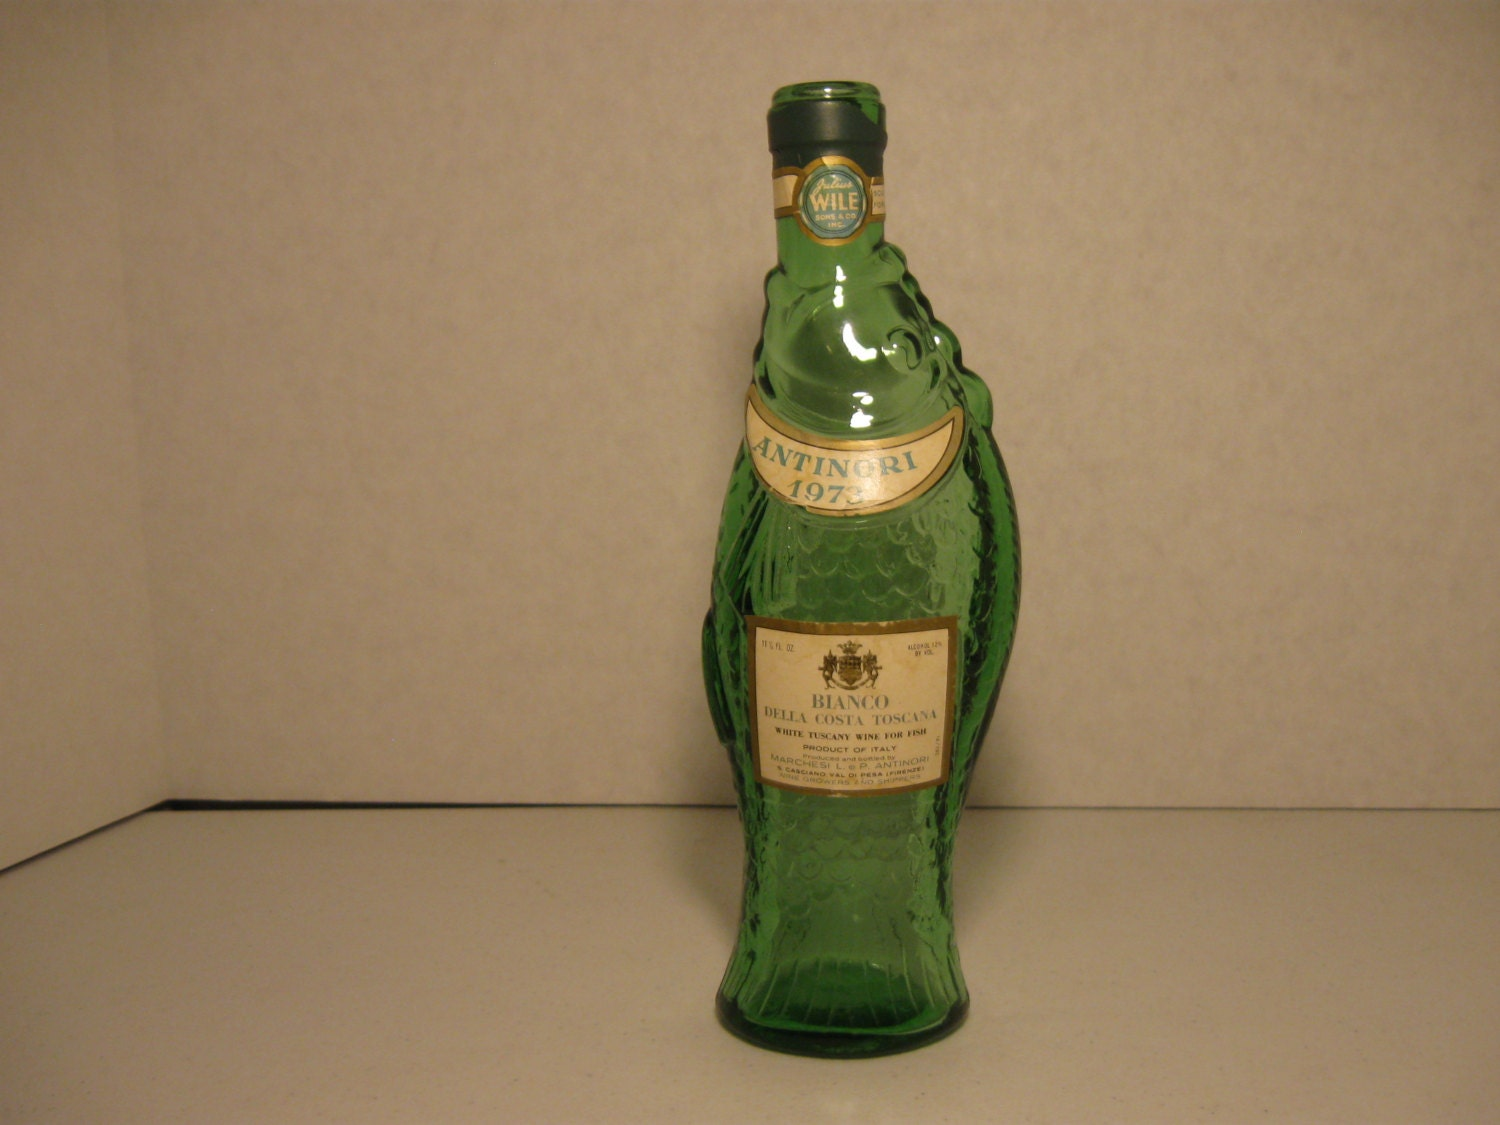 Vintage glass fish bottle antinori 1973 wine bottle green for Fish wine bottle